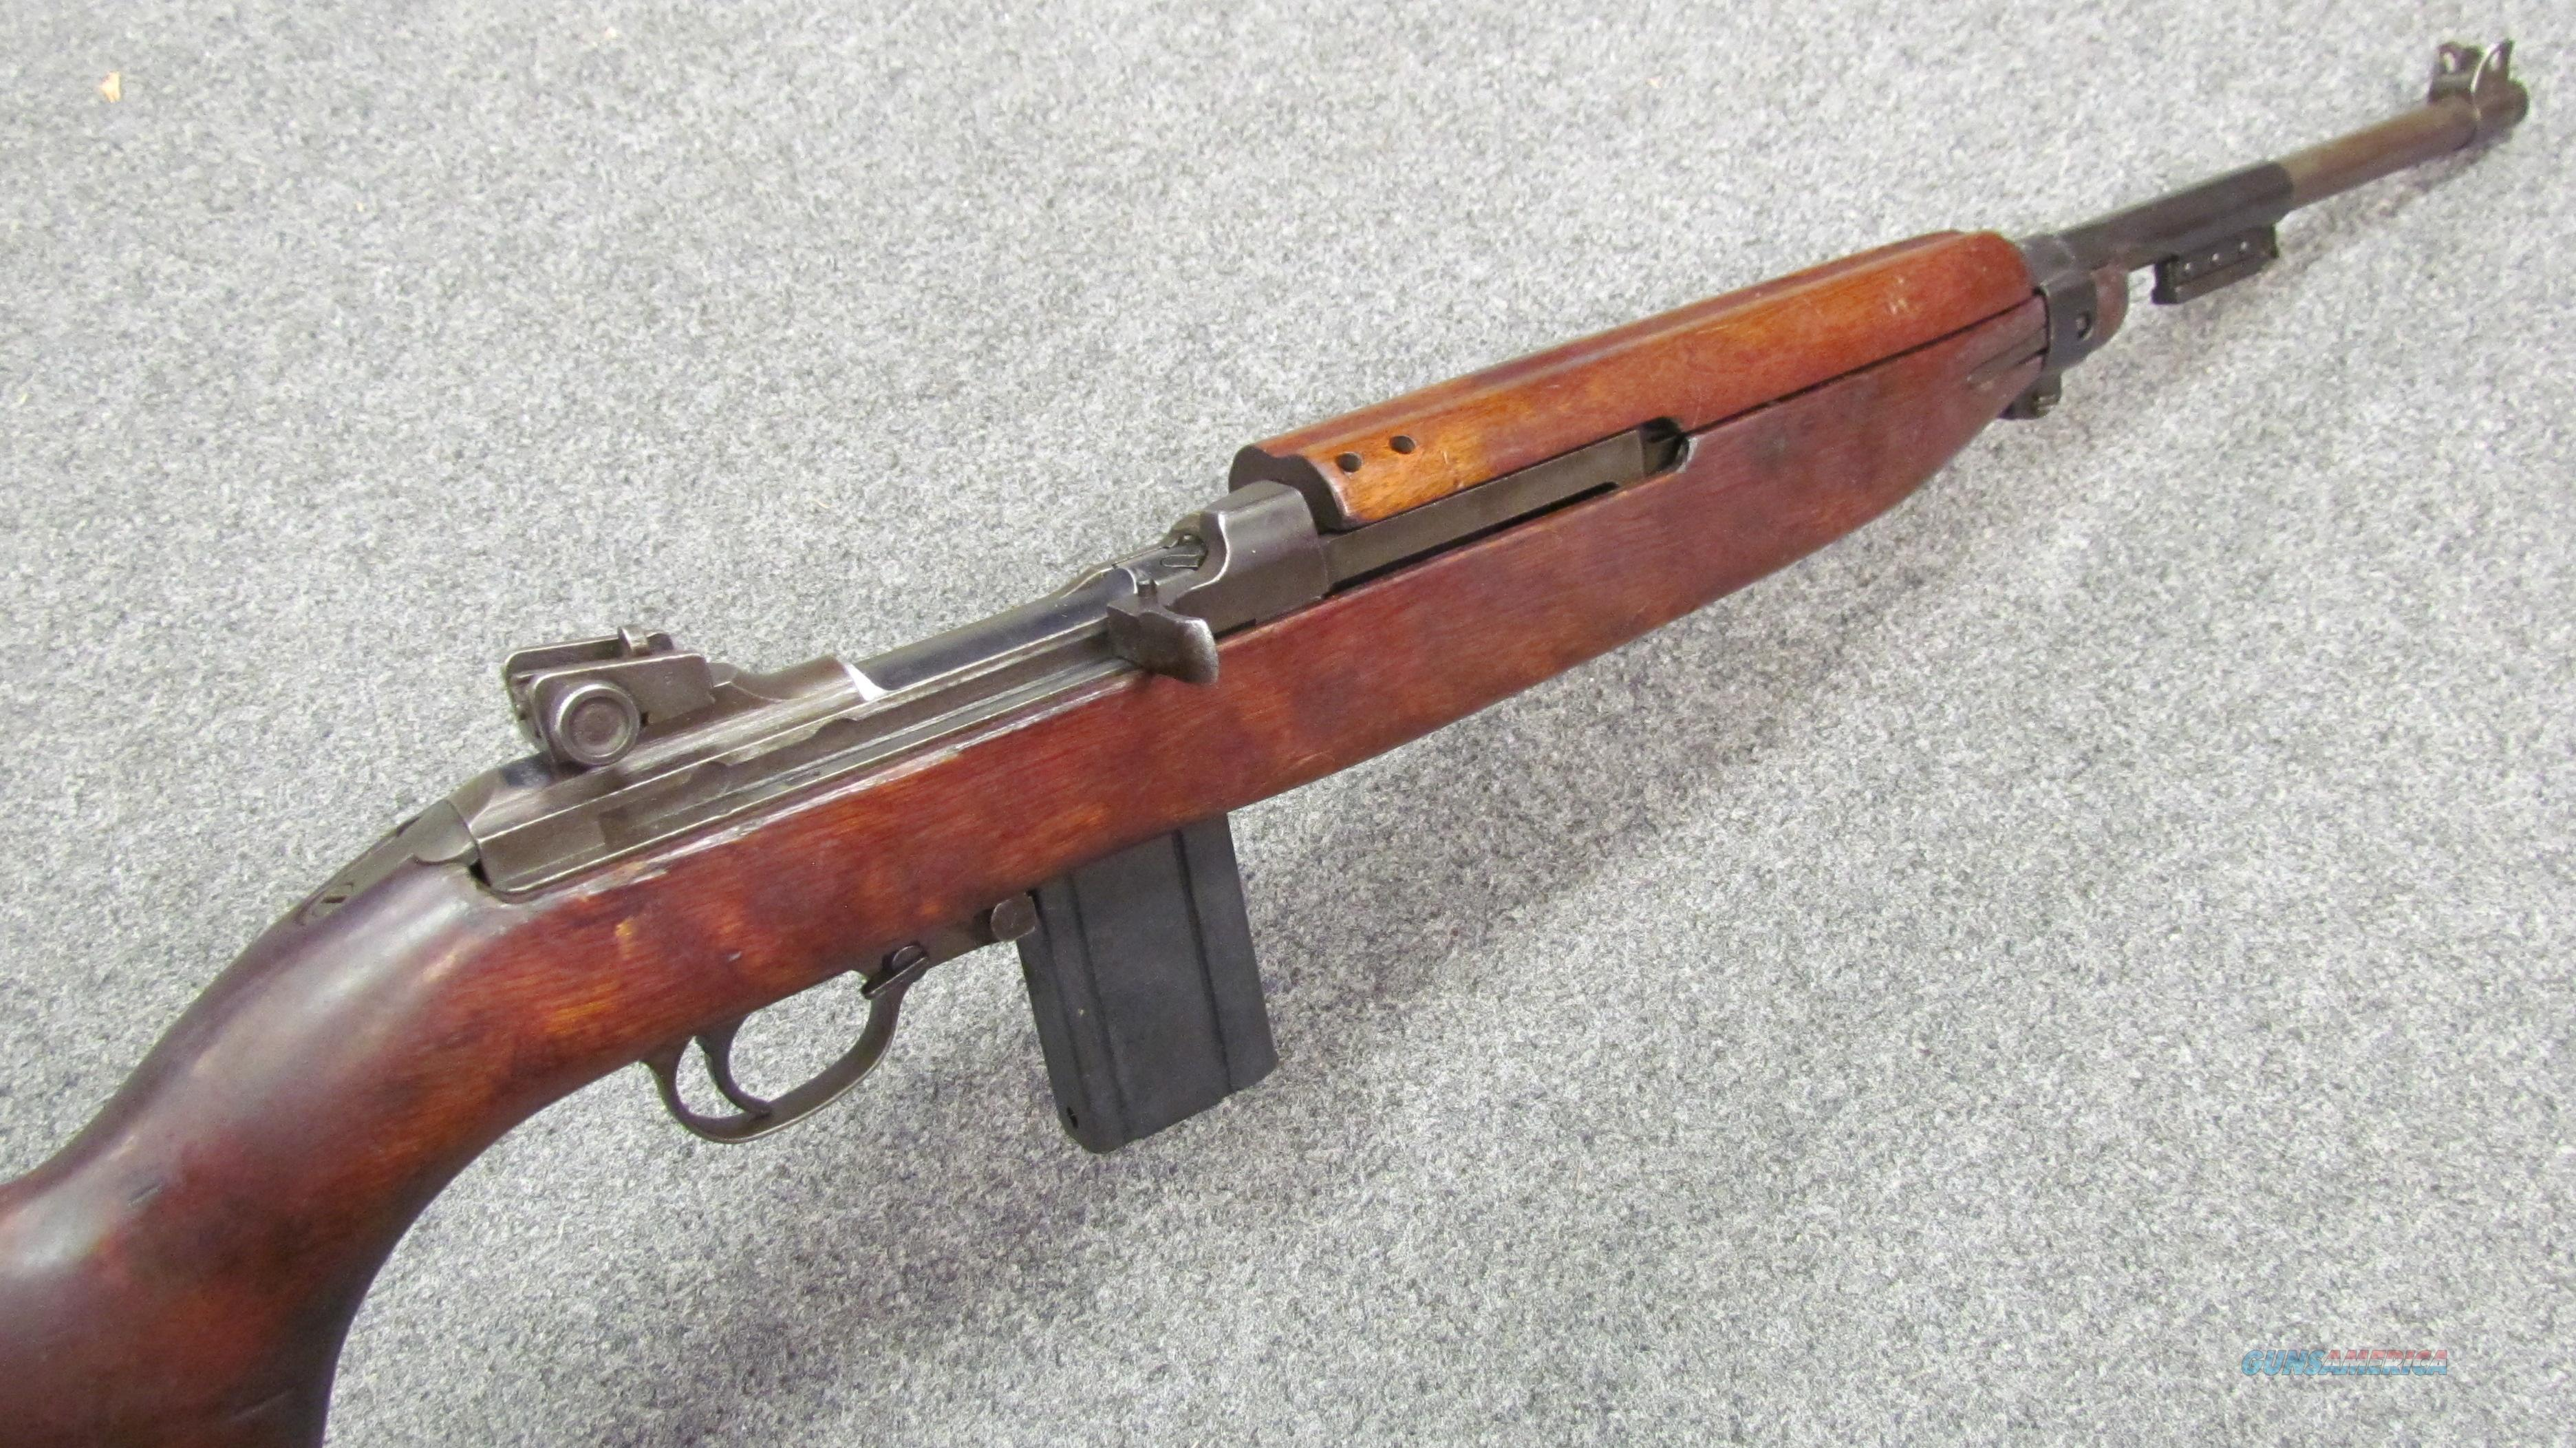 !* CLASSIC*! WWII  Underwood/ Inland M-1 Carbine Exc Bore! Good Wood! 1943 matching barrel! & O.B.O.!  Guns > Rifles > Military Misc. Rifles US > M1 Carbine